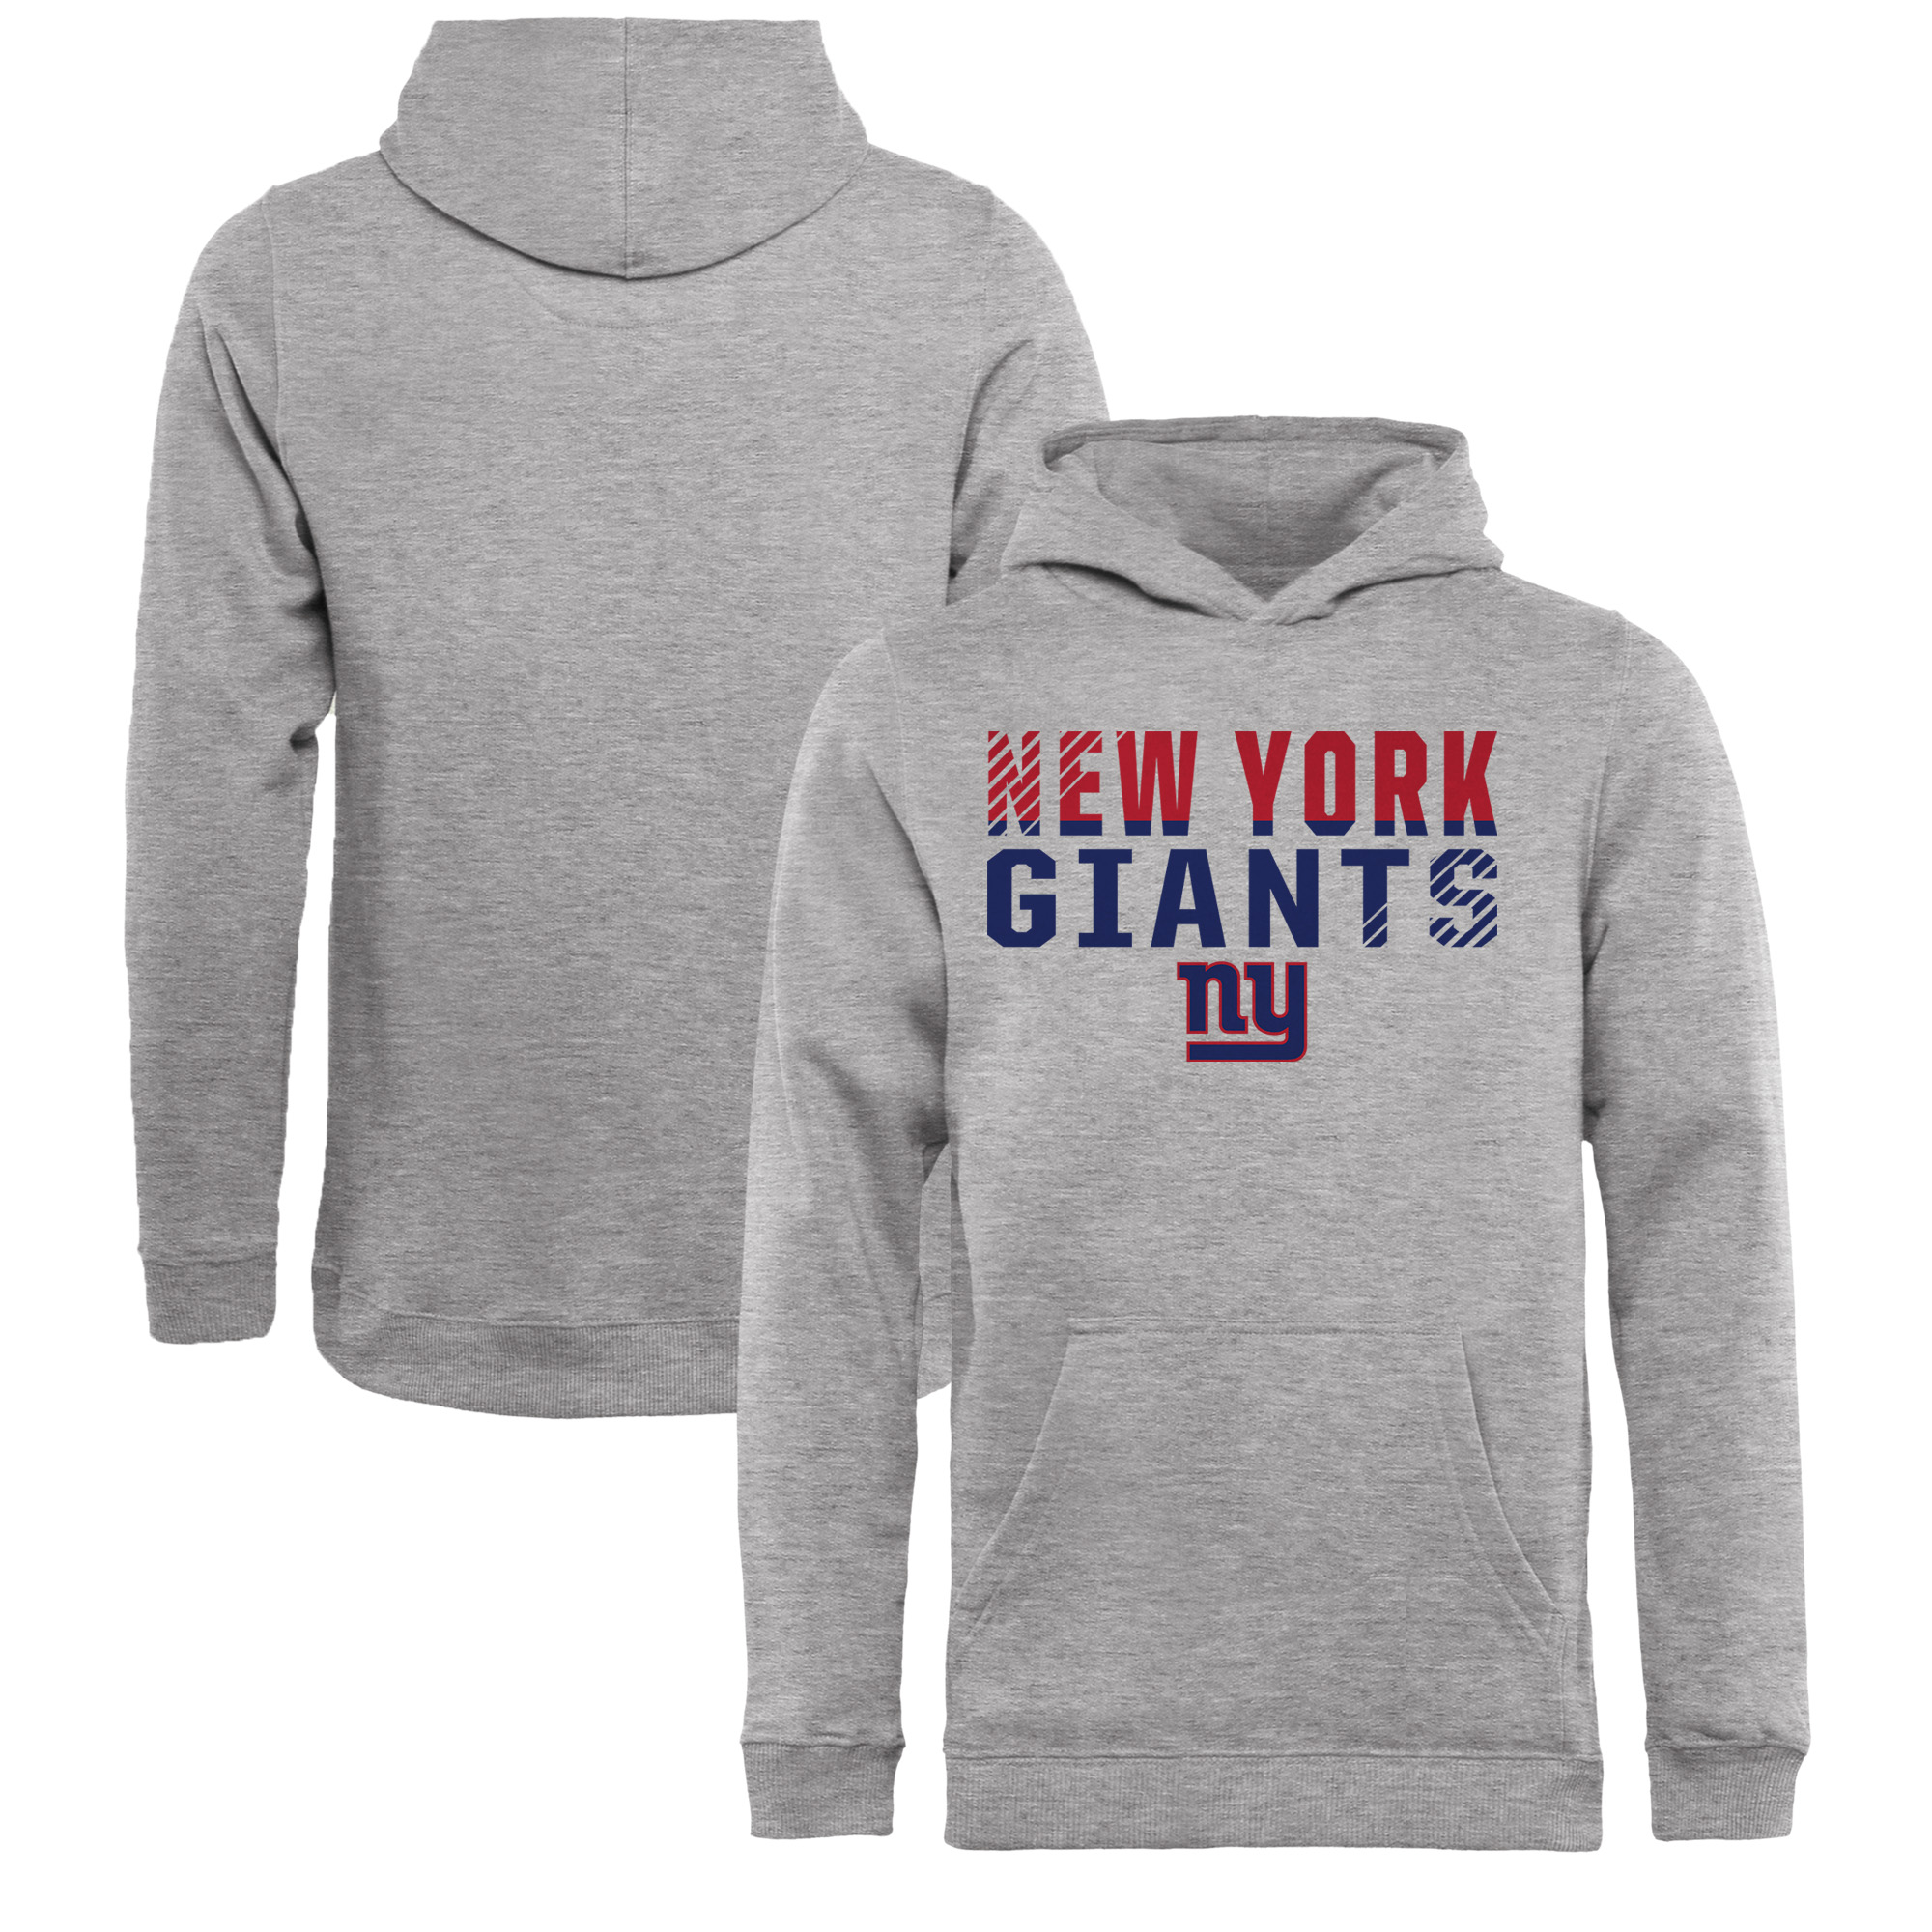 New York Giants NFL Pro Line by Fanatics Branded Youth Iconic Collection Fade Out Pullover Hoodie - Ash